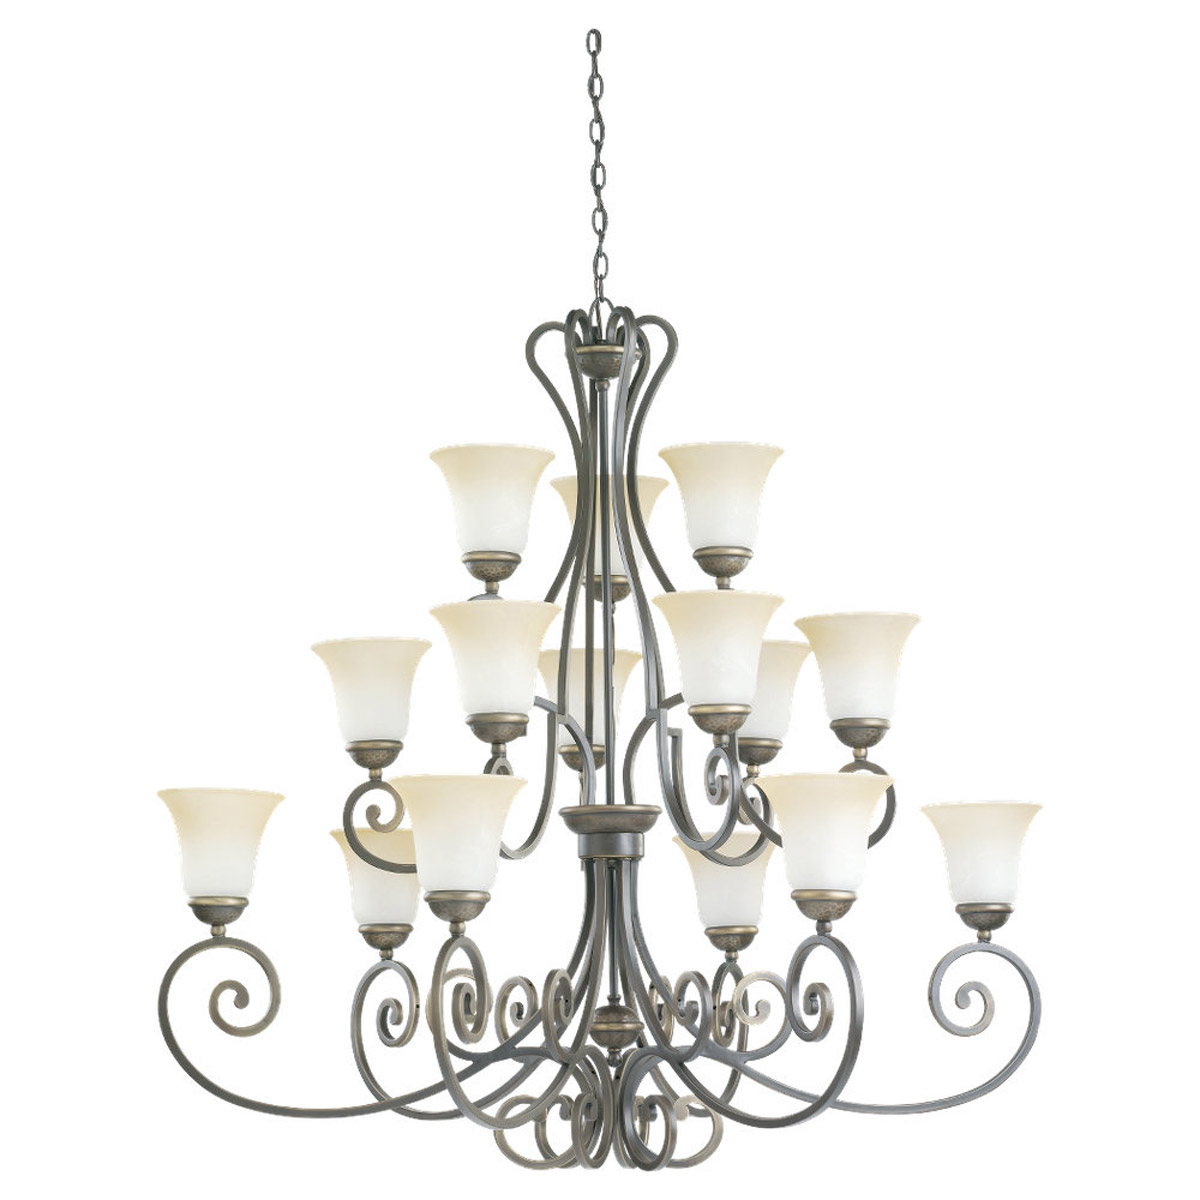 Sea Gull Lighting Brandywine 15 Light Chandelier in Antique Bronze 31433-71